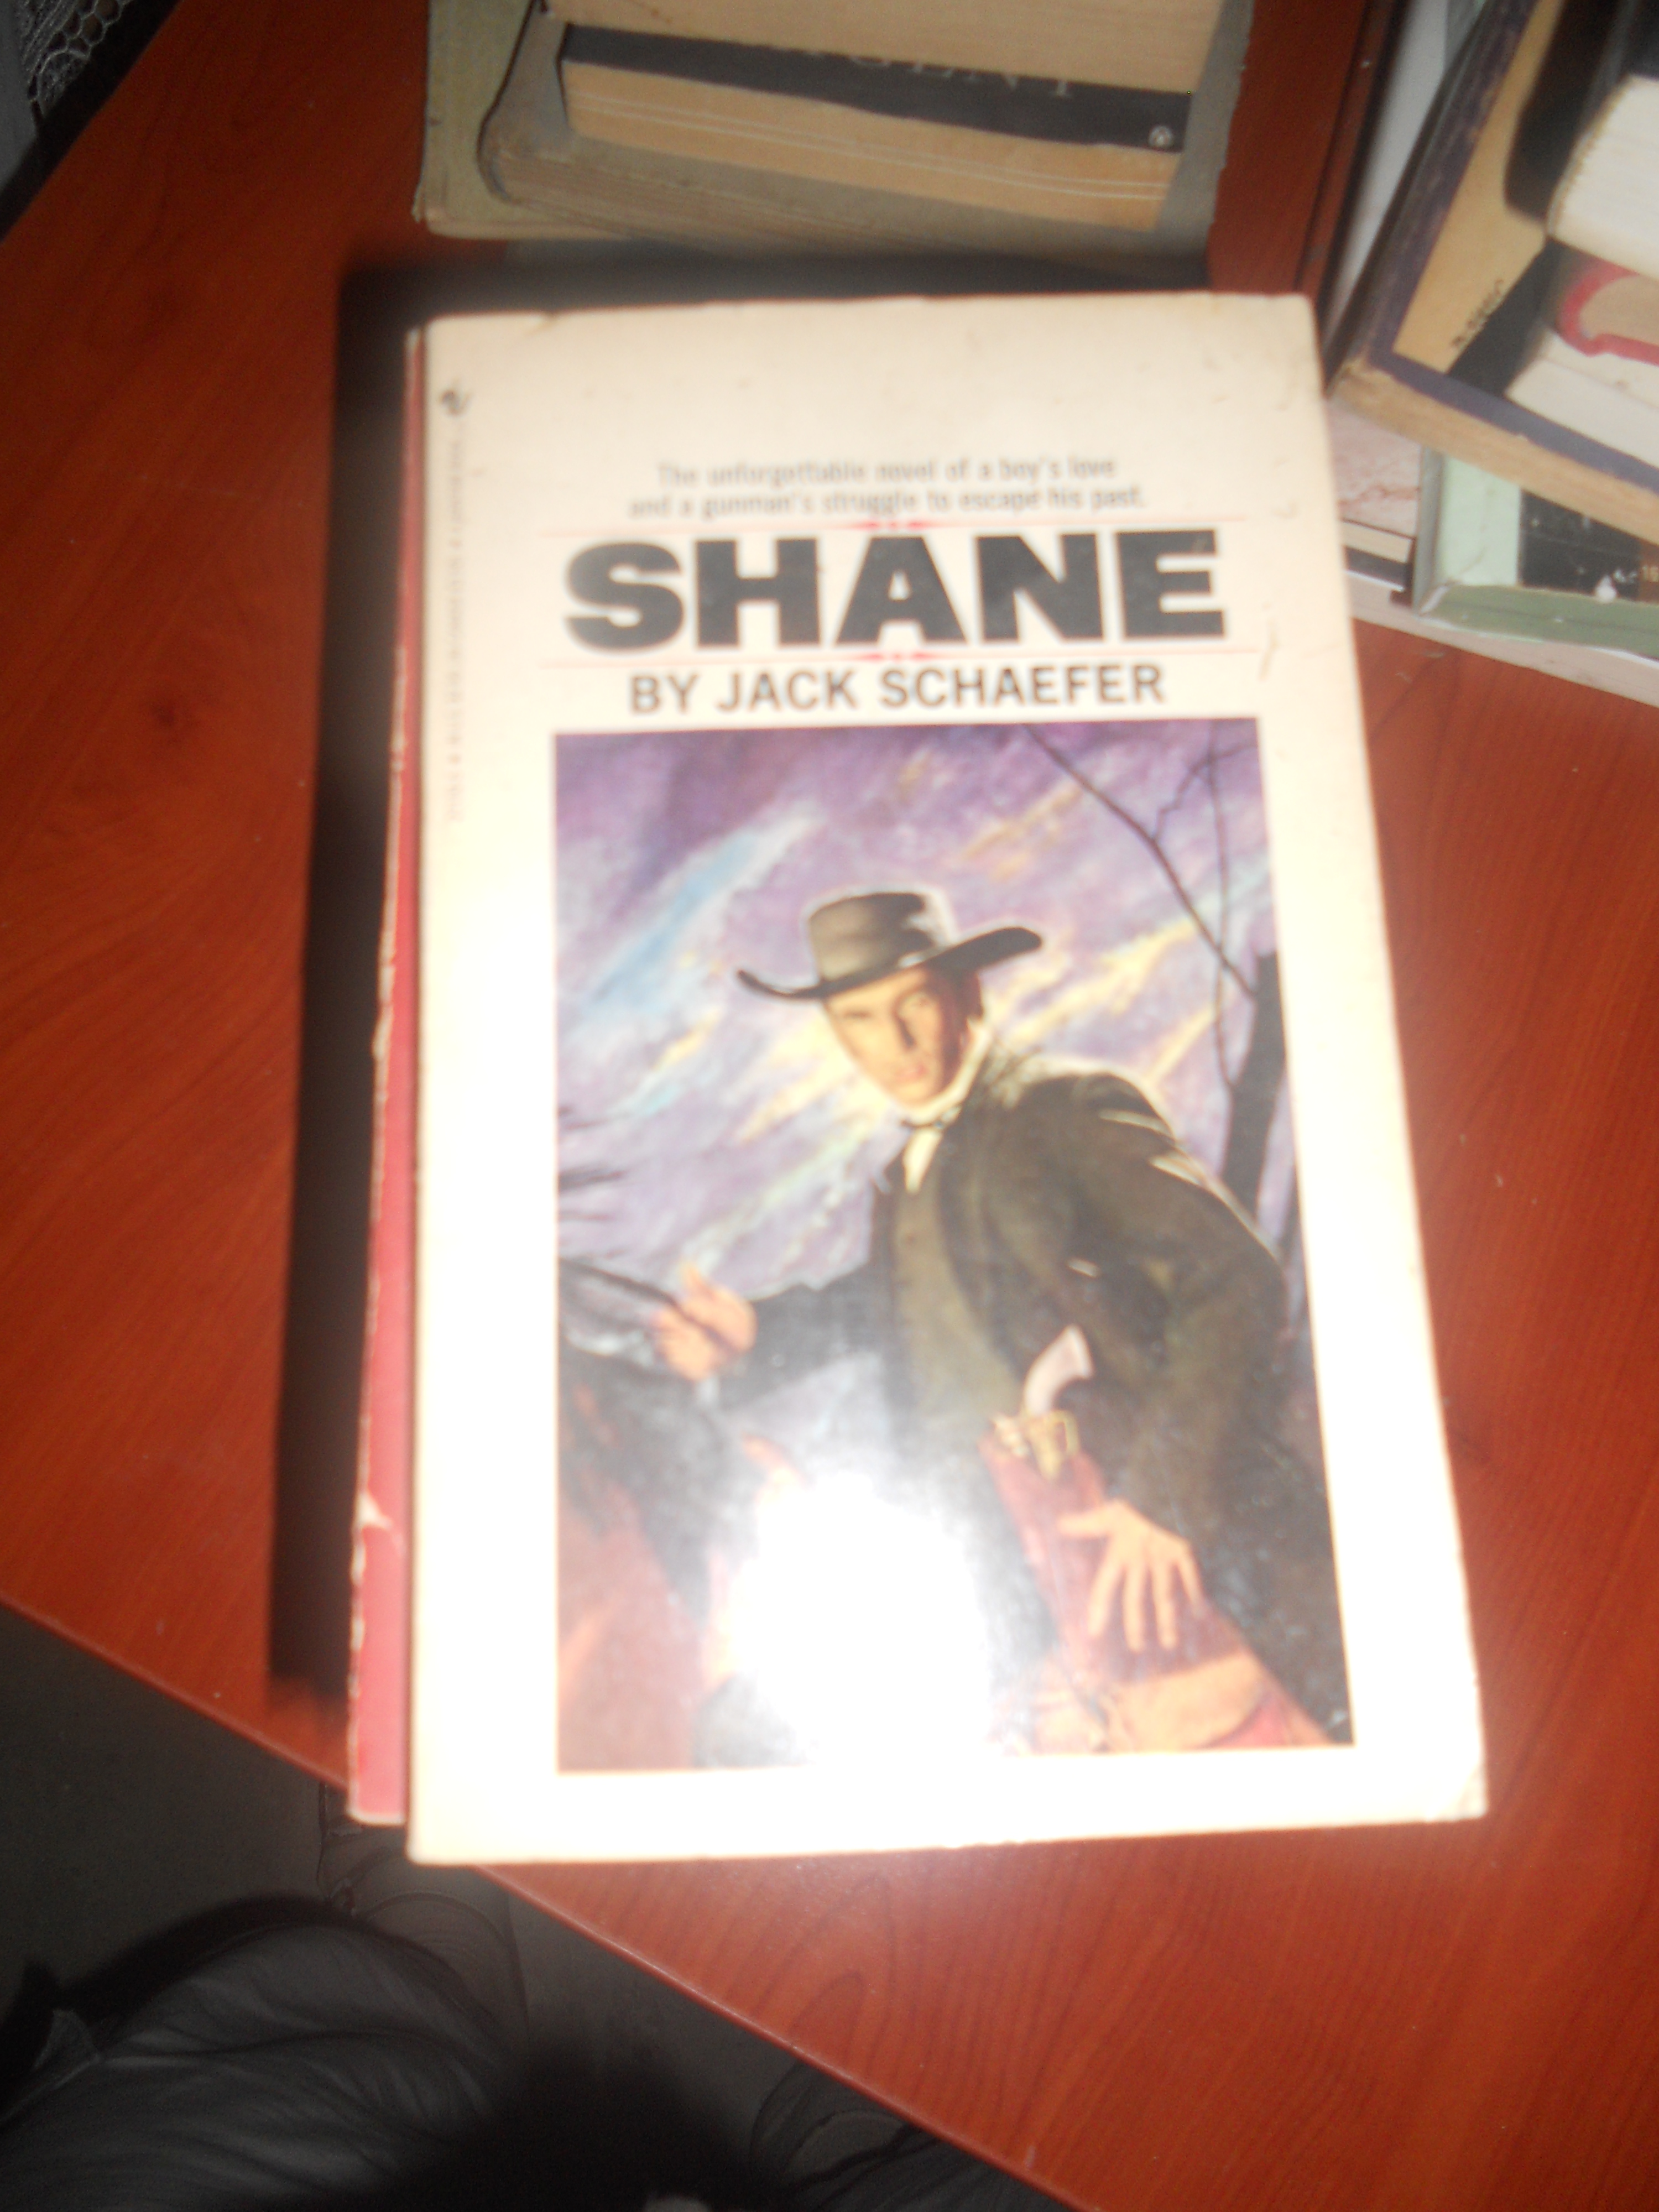 shane by jack schaefer Jack schaefer has 36 books on goodreads with 17576 ratings jack schaefer's most popular book is shane.